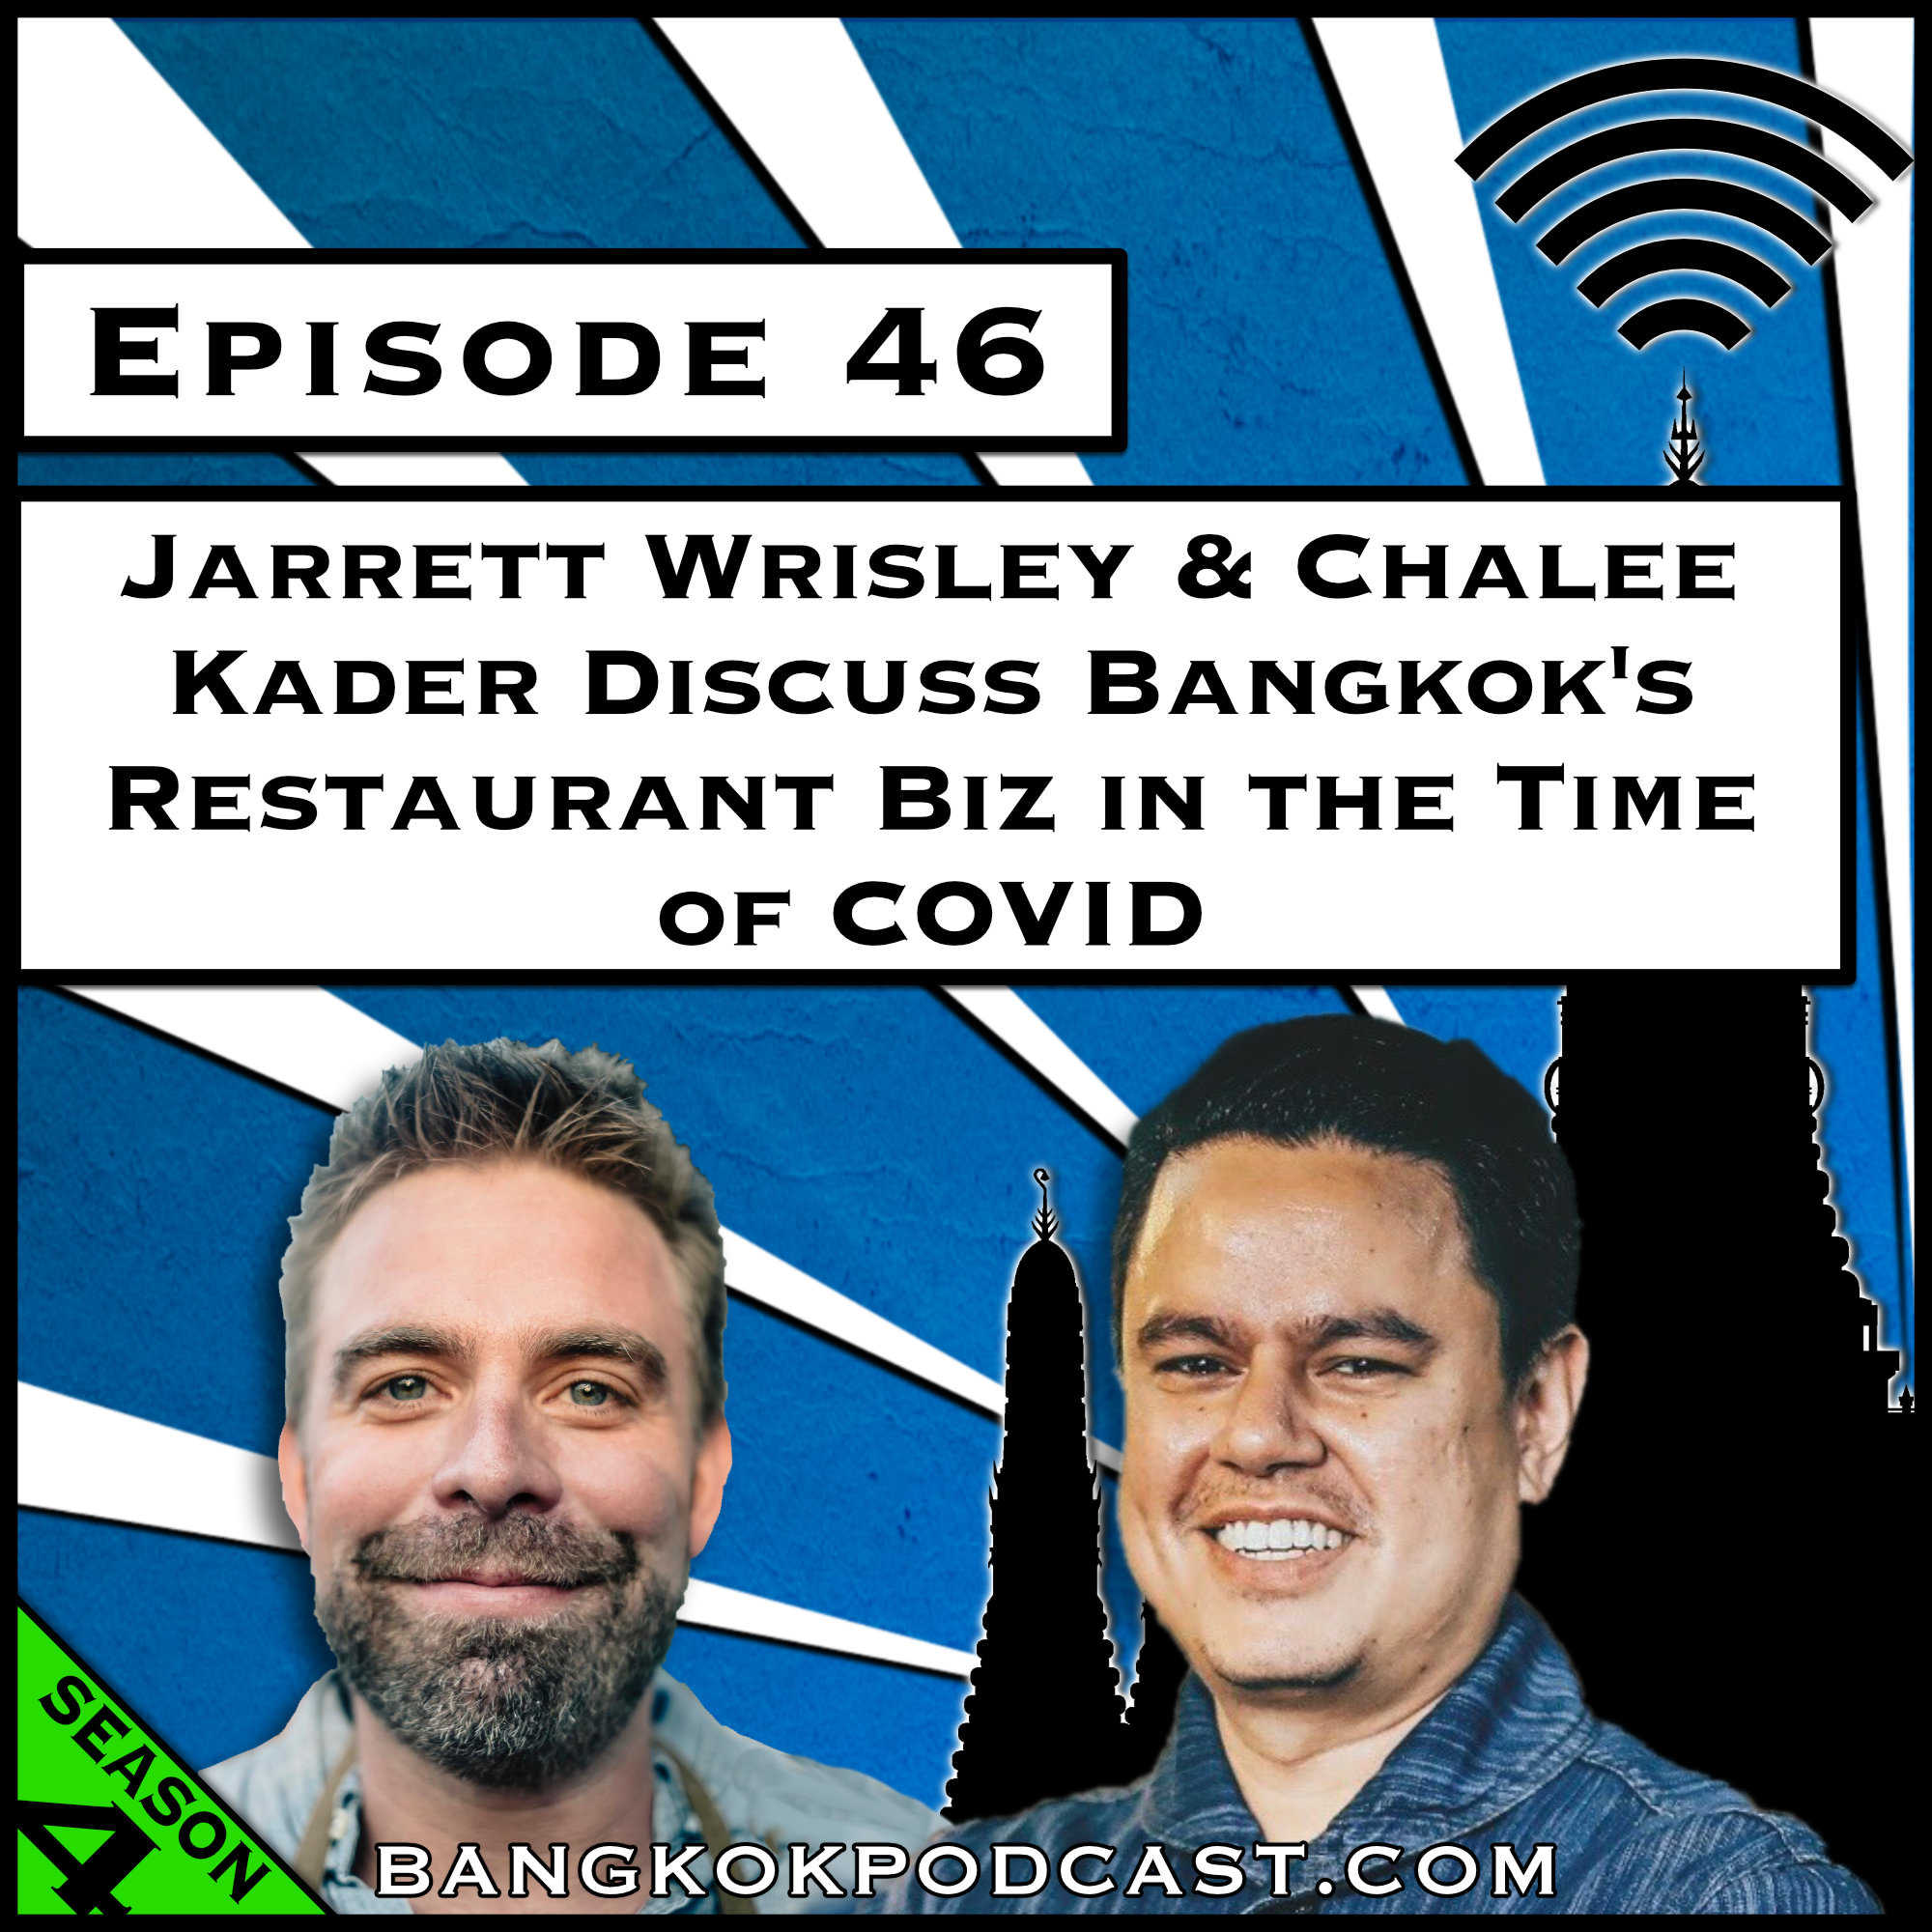 Jarrett Wrisley & Chalee Kader Discuss Bangkok's Restaurant Biz in the Time of Covid [Season 4, Episode 46]